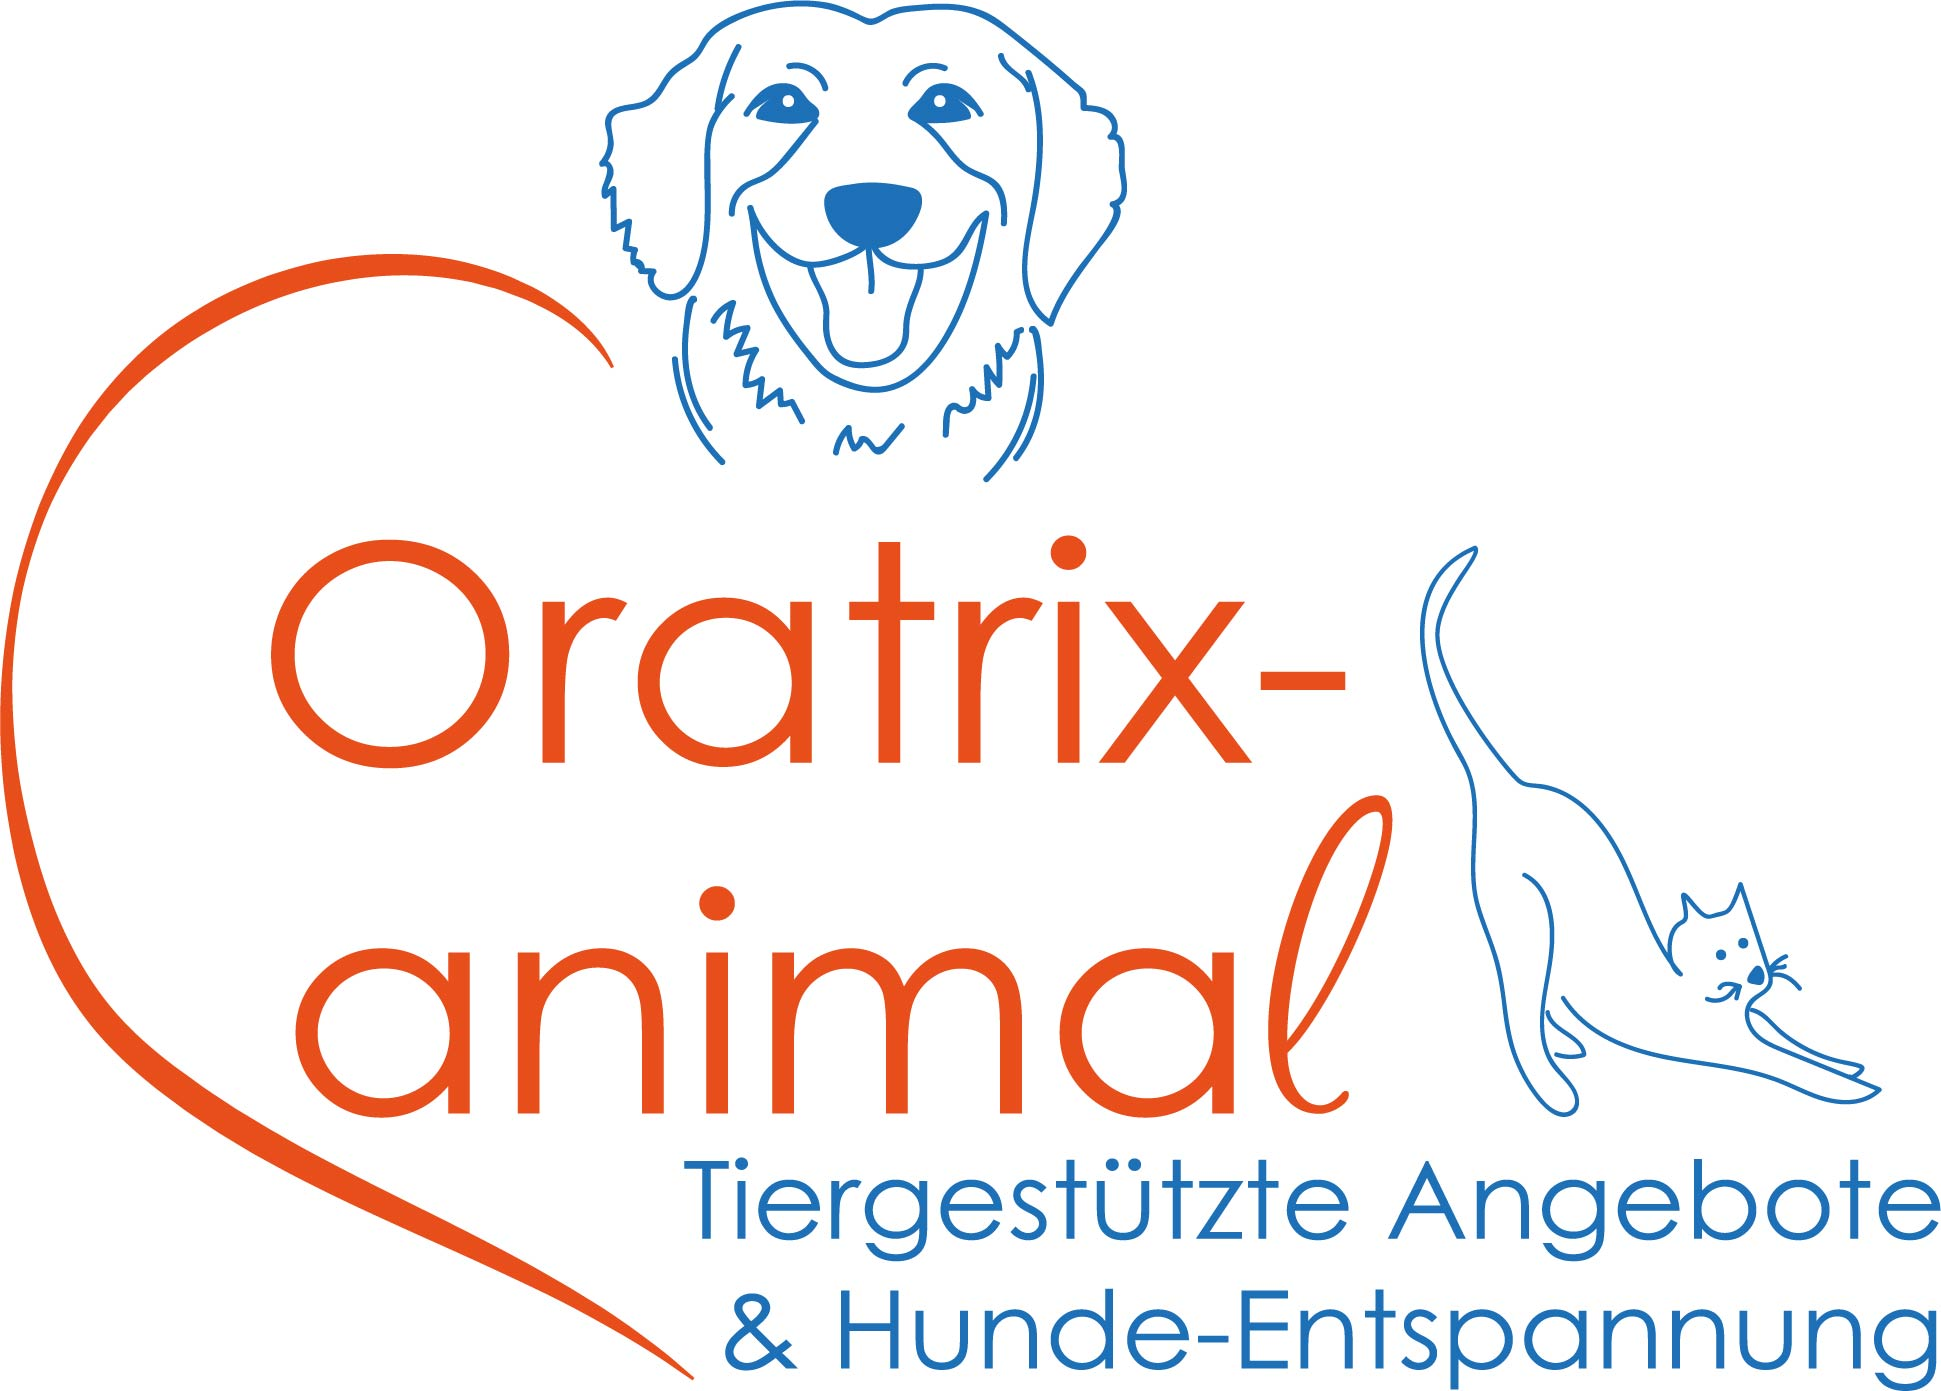 Oratrix-animal Logo